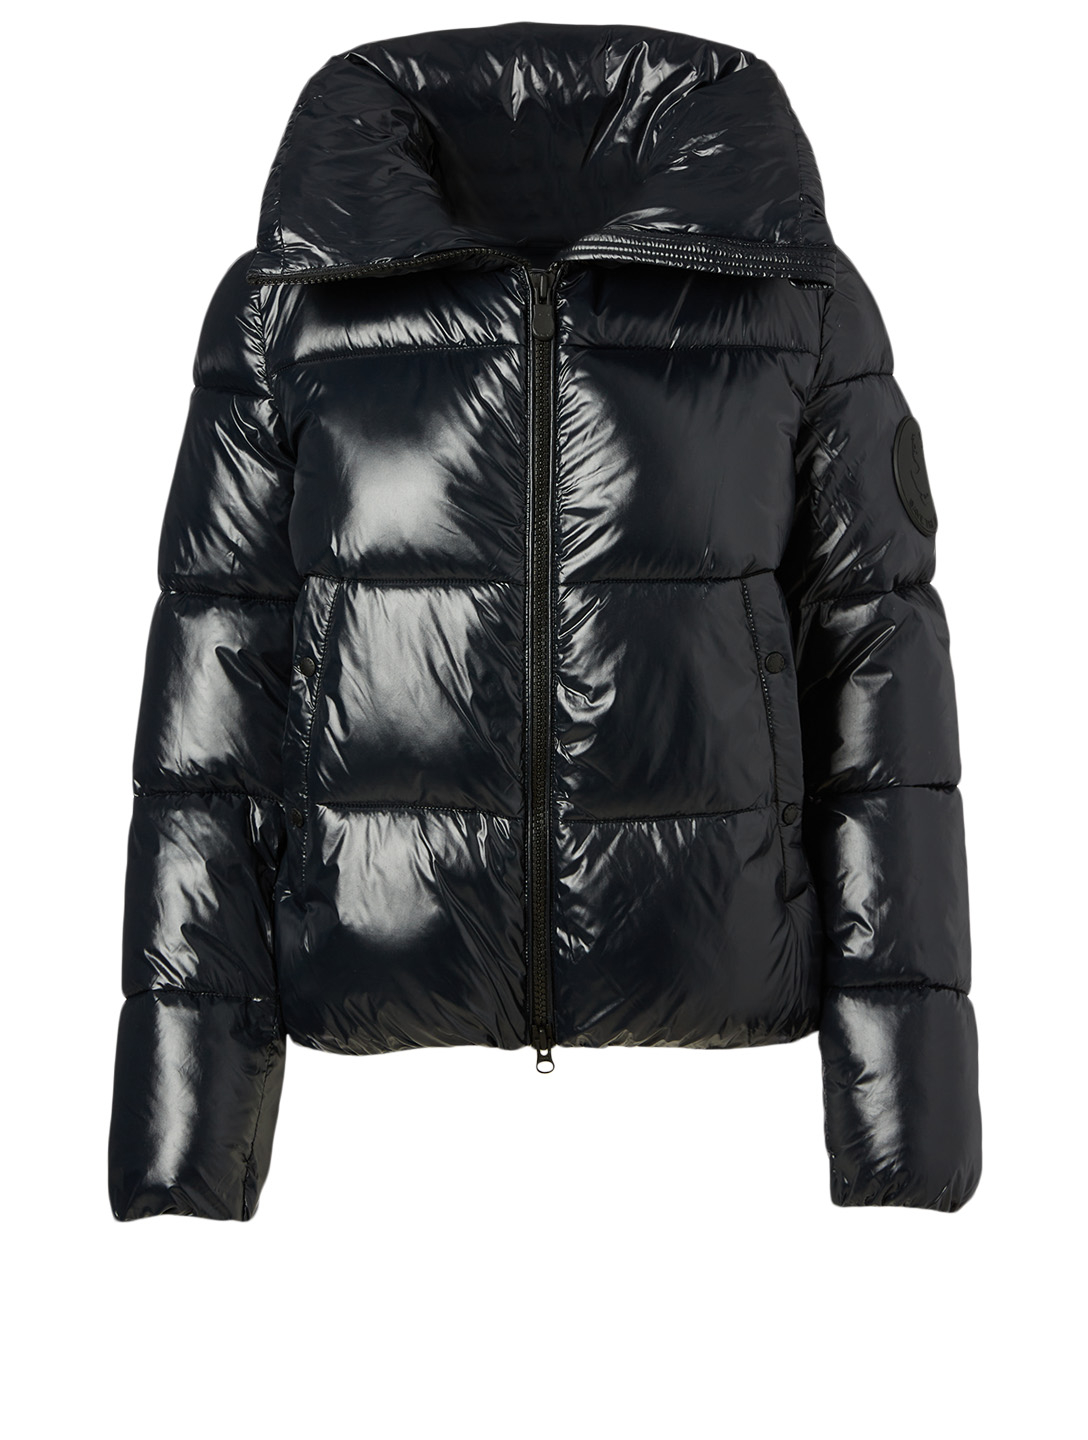 SAVE THE DUCK Luck Oversized Puffer Jacket With Stand Collar Women's Black